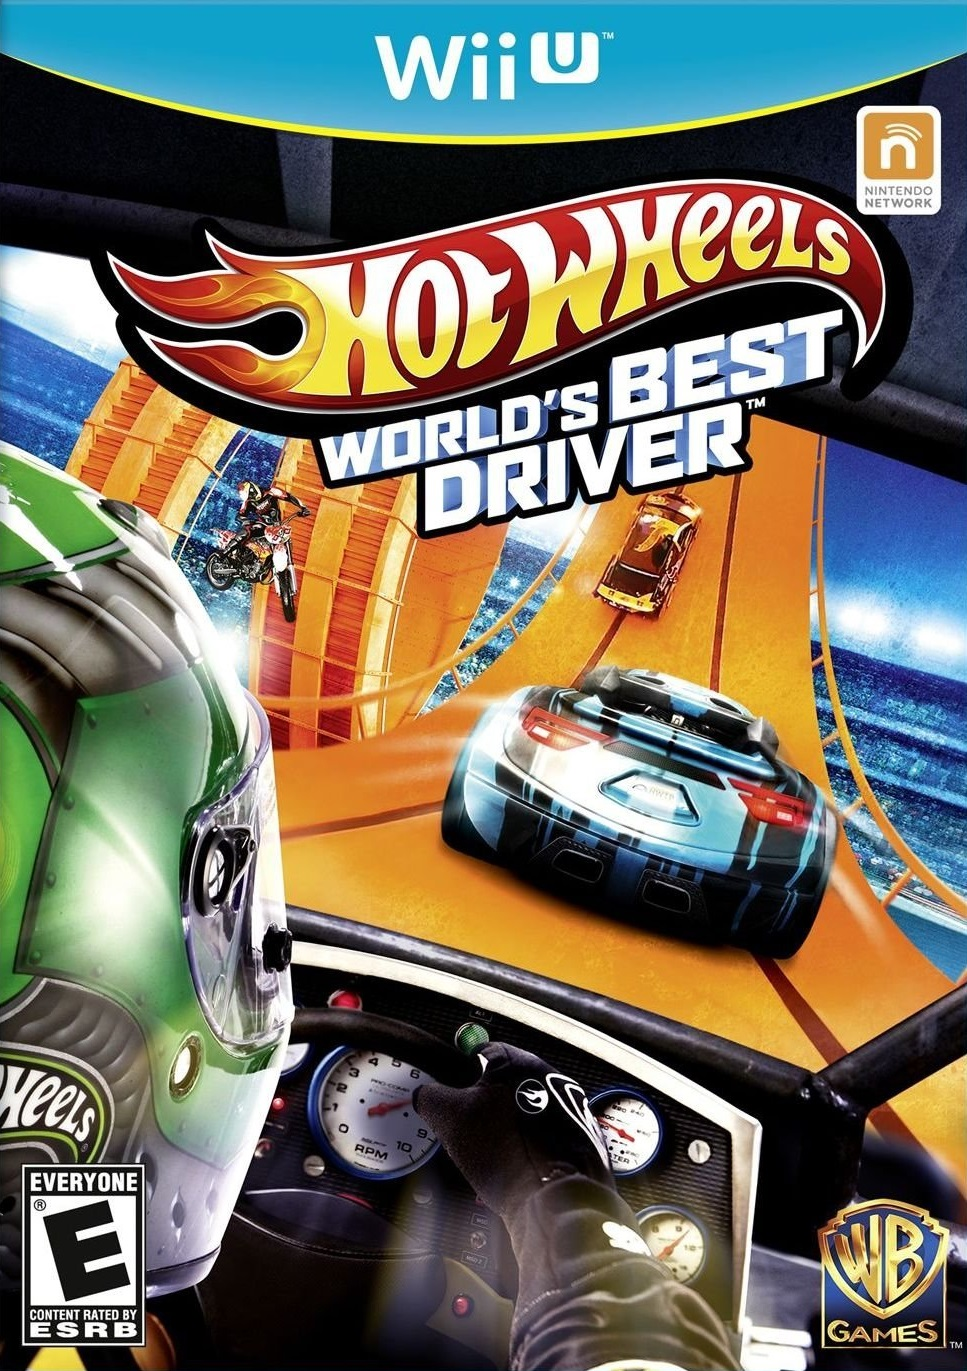 https://www.gamexchange.co.uk/images/pictures/products/nintendo-wii-u/hot-wheels-worlds-best-driver-wiiu.jpg